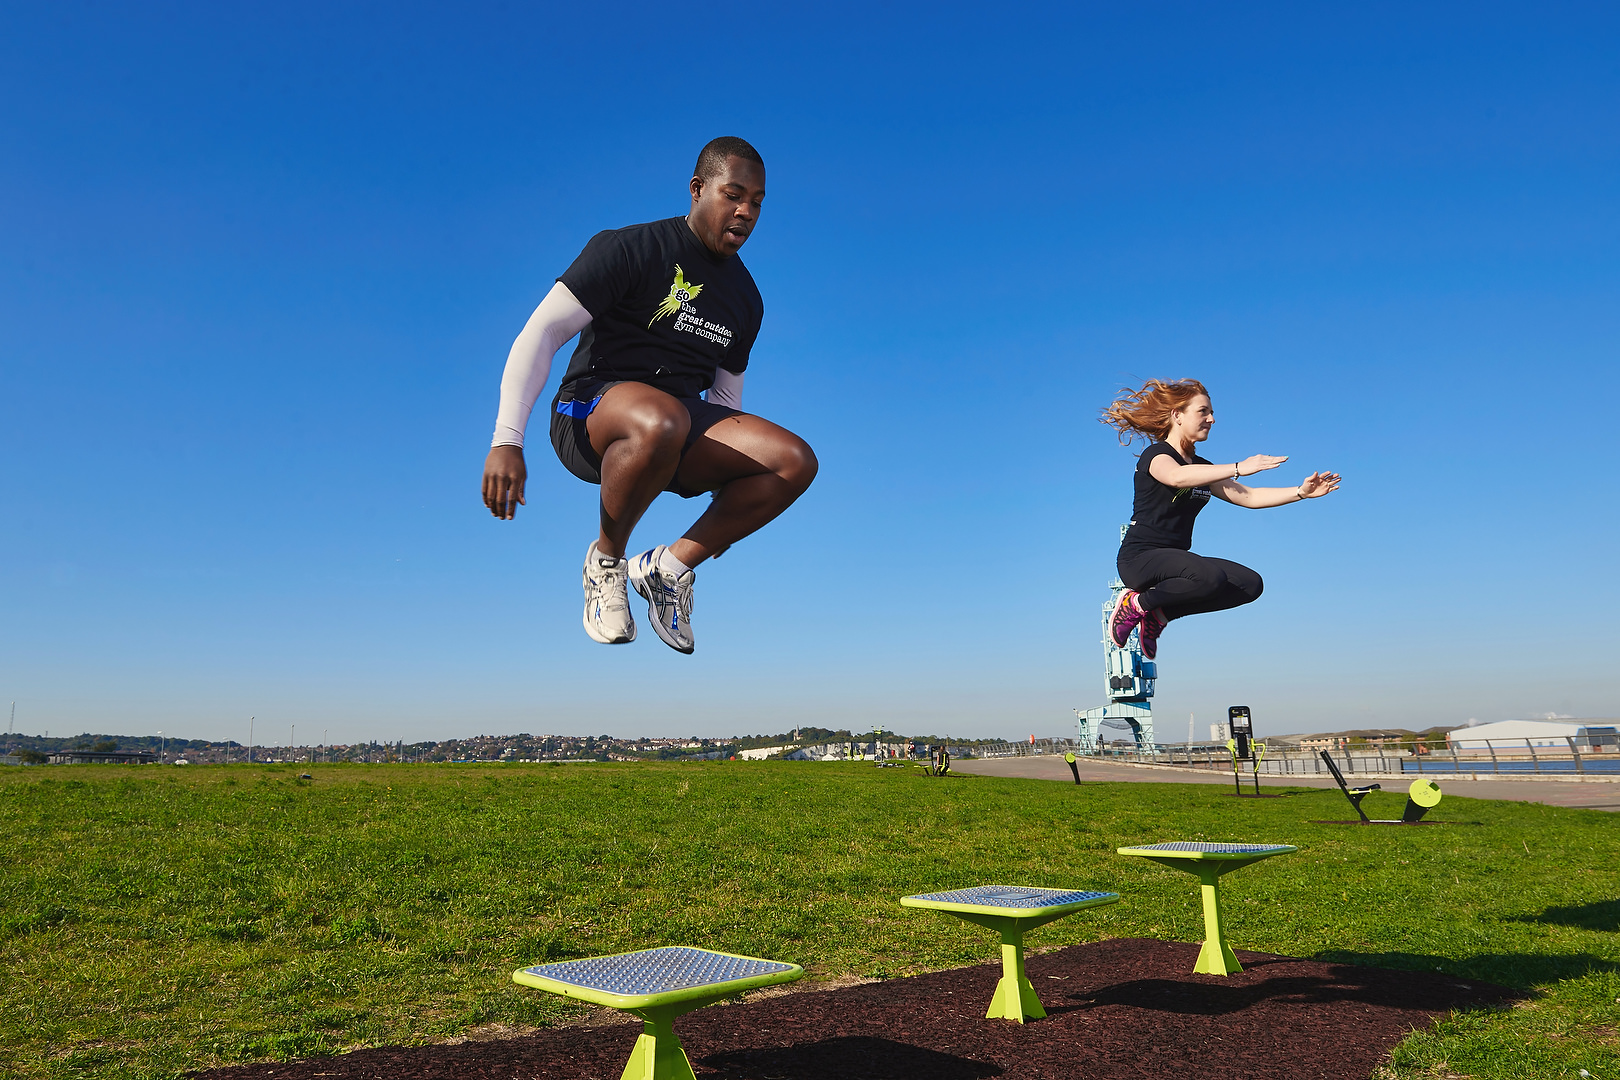 two people jumping from an outdoor gym platform